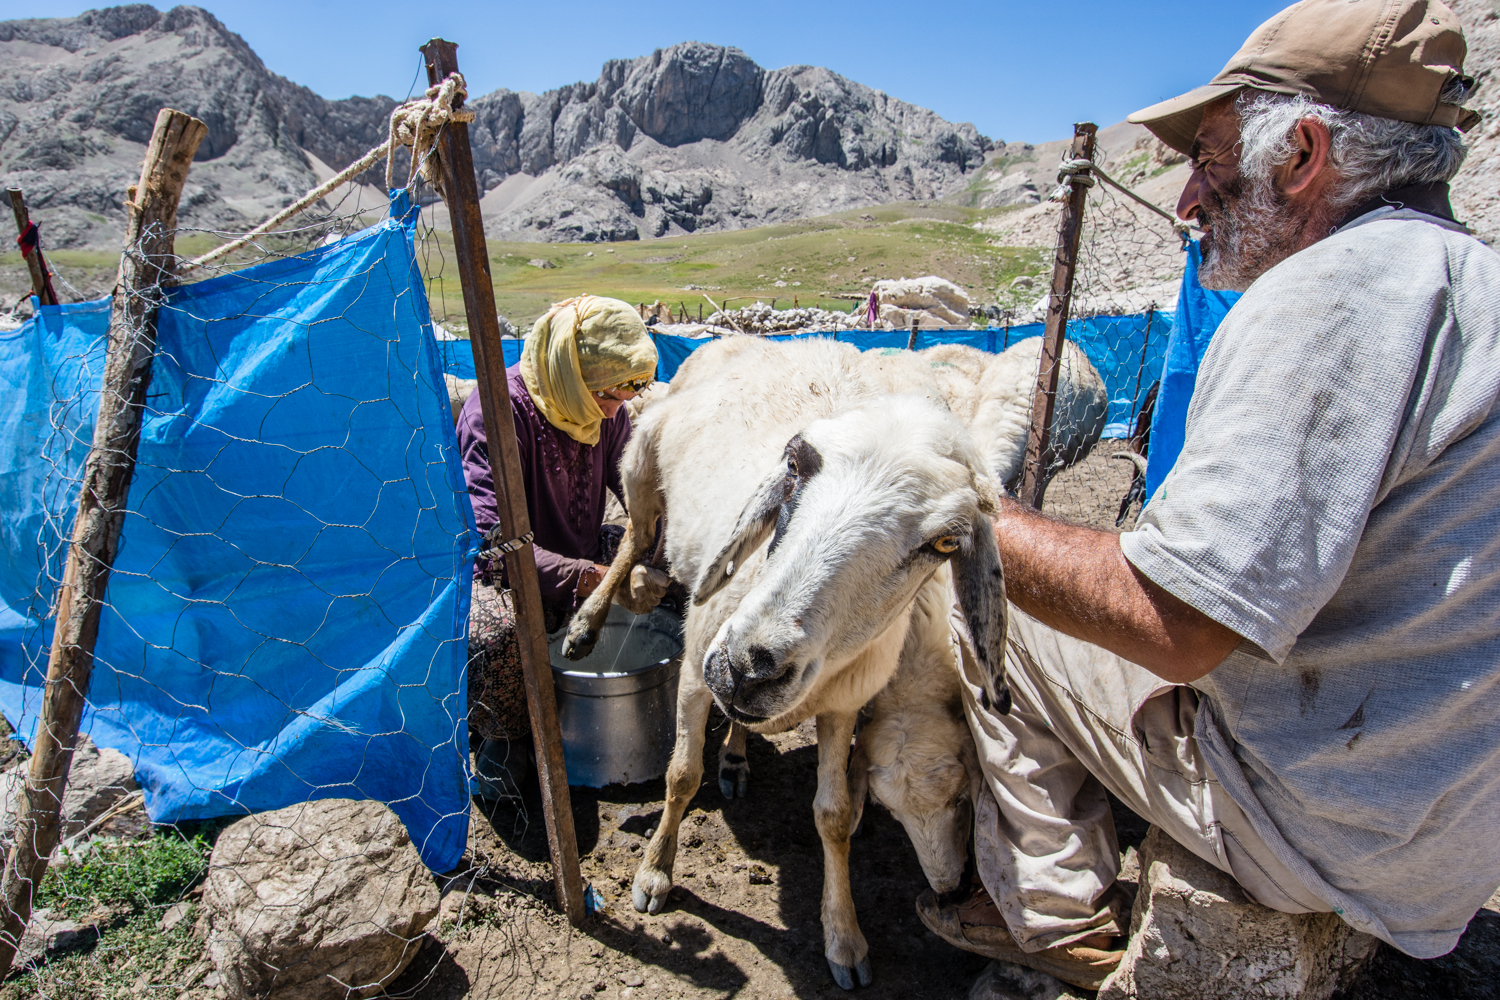 In addition to seeking fresh, free fodder for their flocks, the cool alpine climate is perfect for producing top quality tulum peynir, a hard cheese that sells for about $30 per pound.